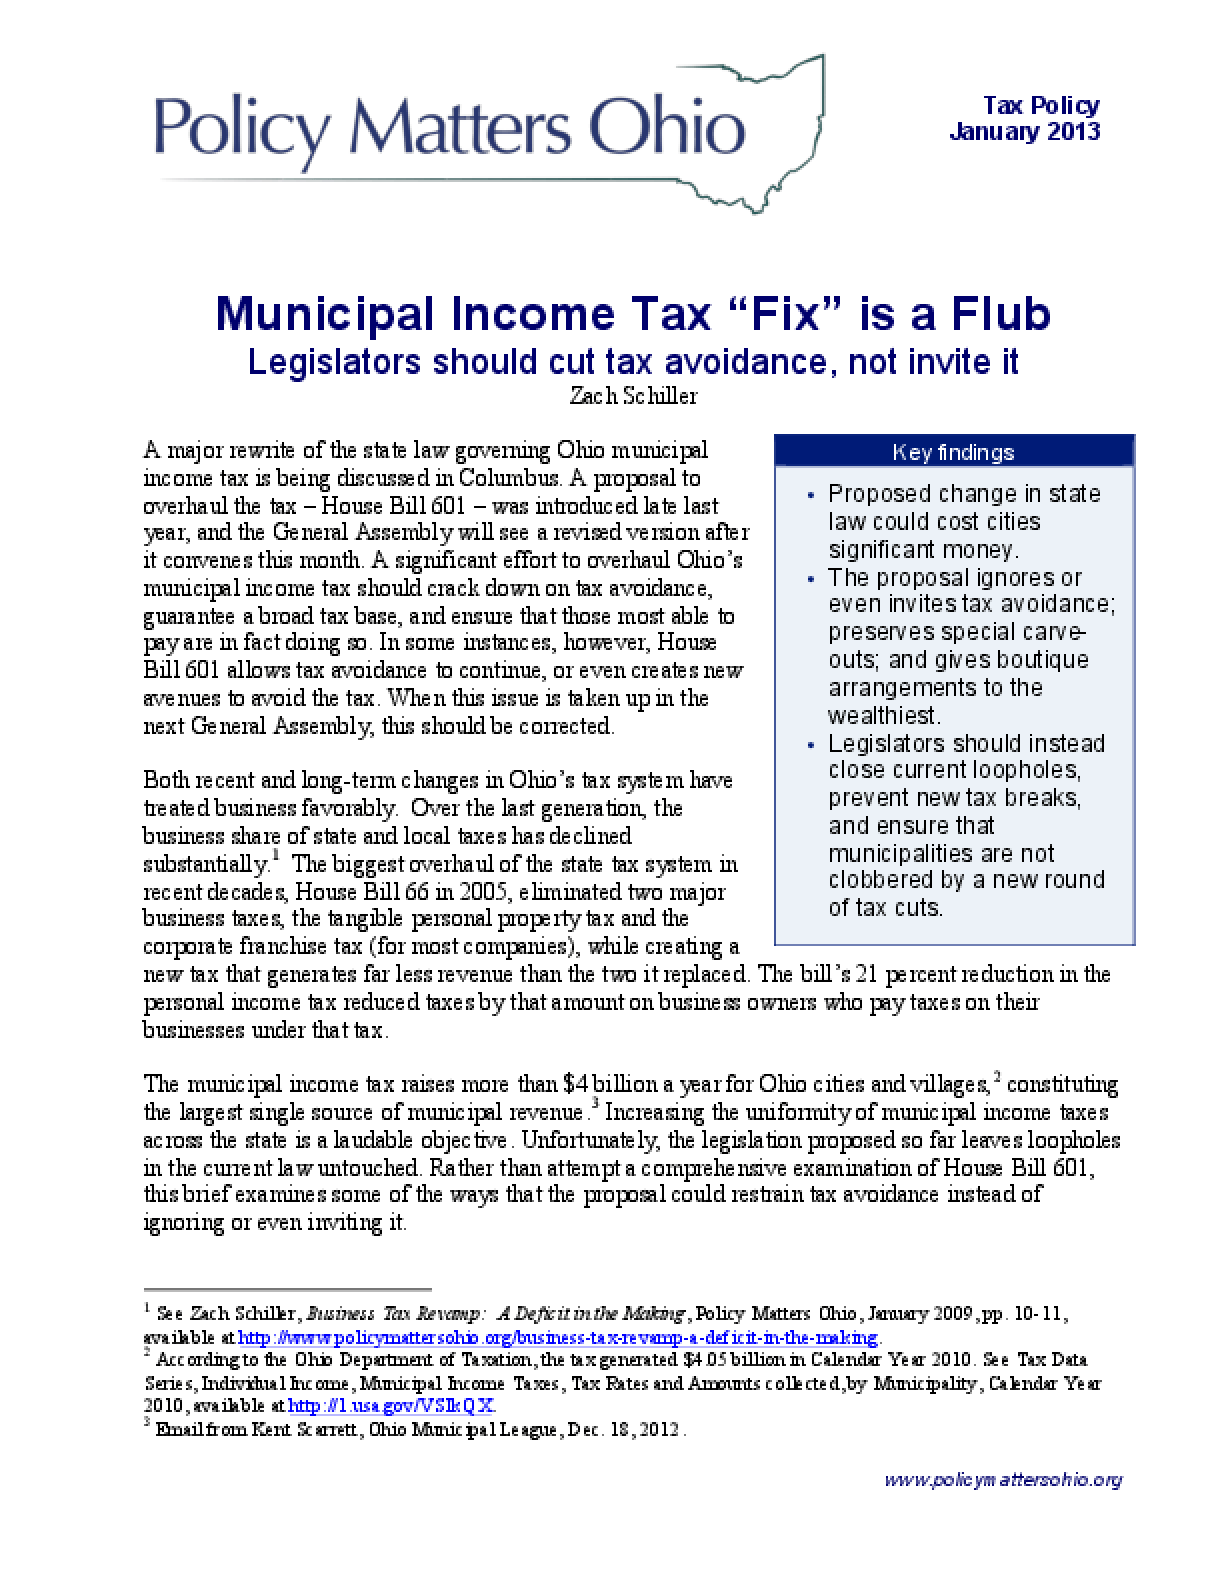 "Municipal Income Tax ""Fix"" is a Flub: Legislators should cut tax avoidance, not invite it"